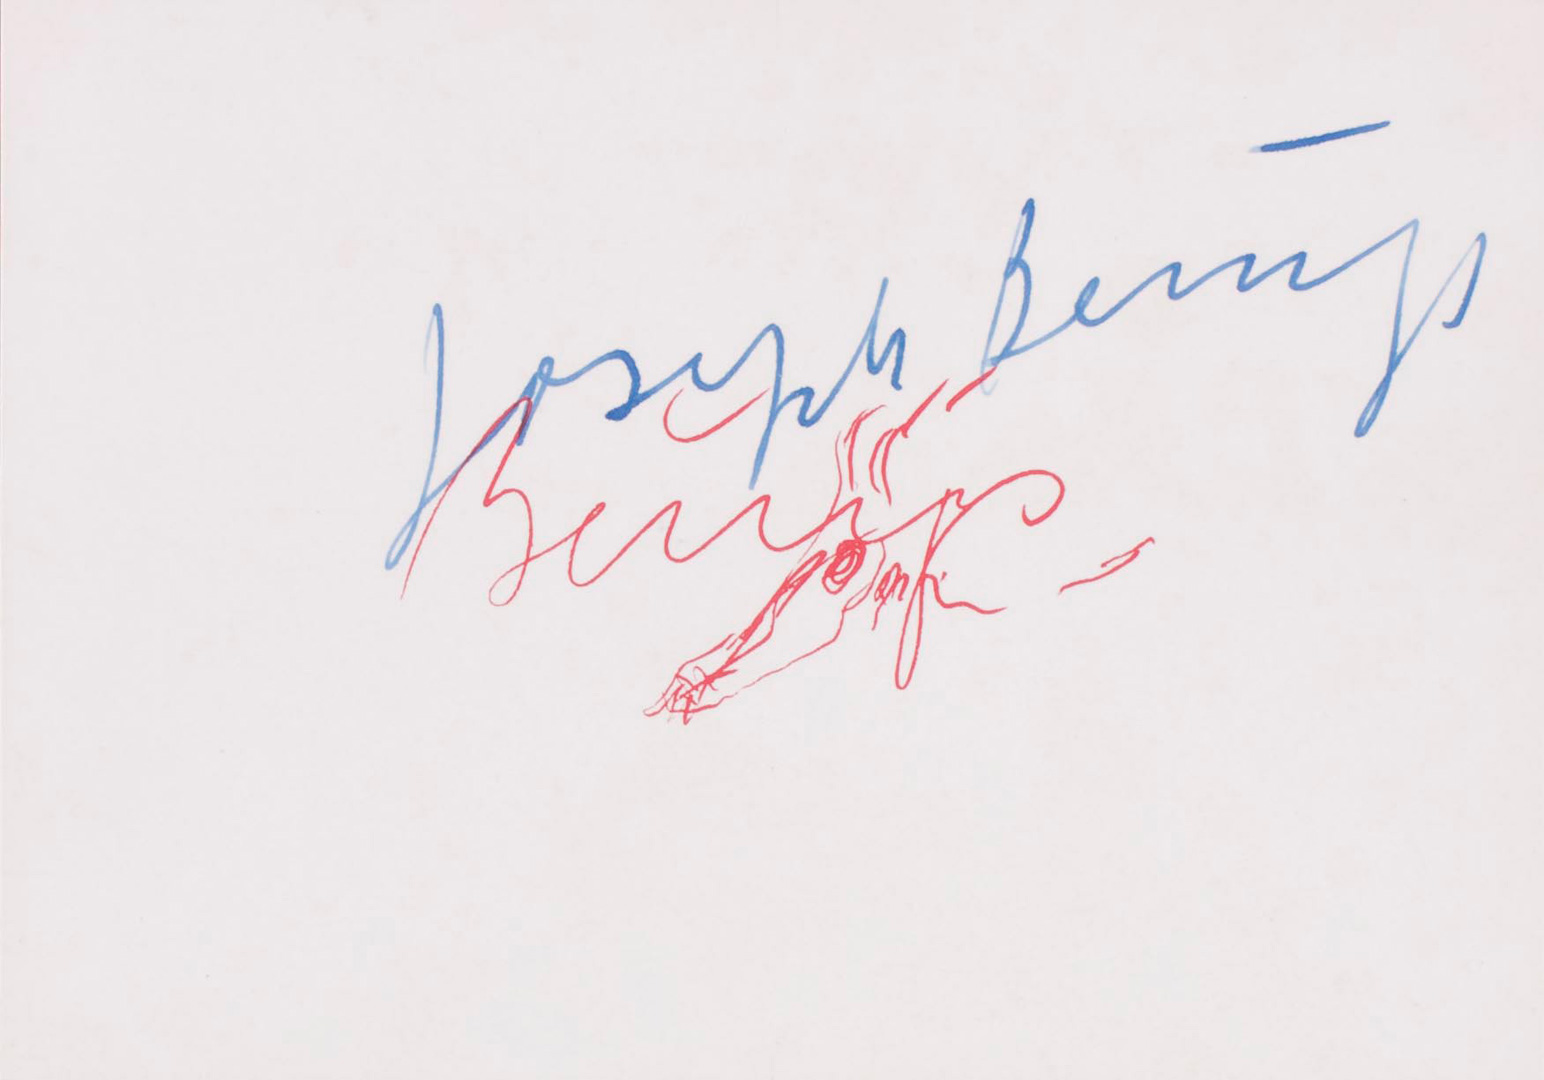 Joseph Beuys - Signatur 1956, 1973, offset on cardstock, stamps reproduced